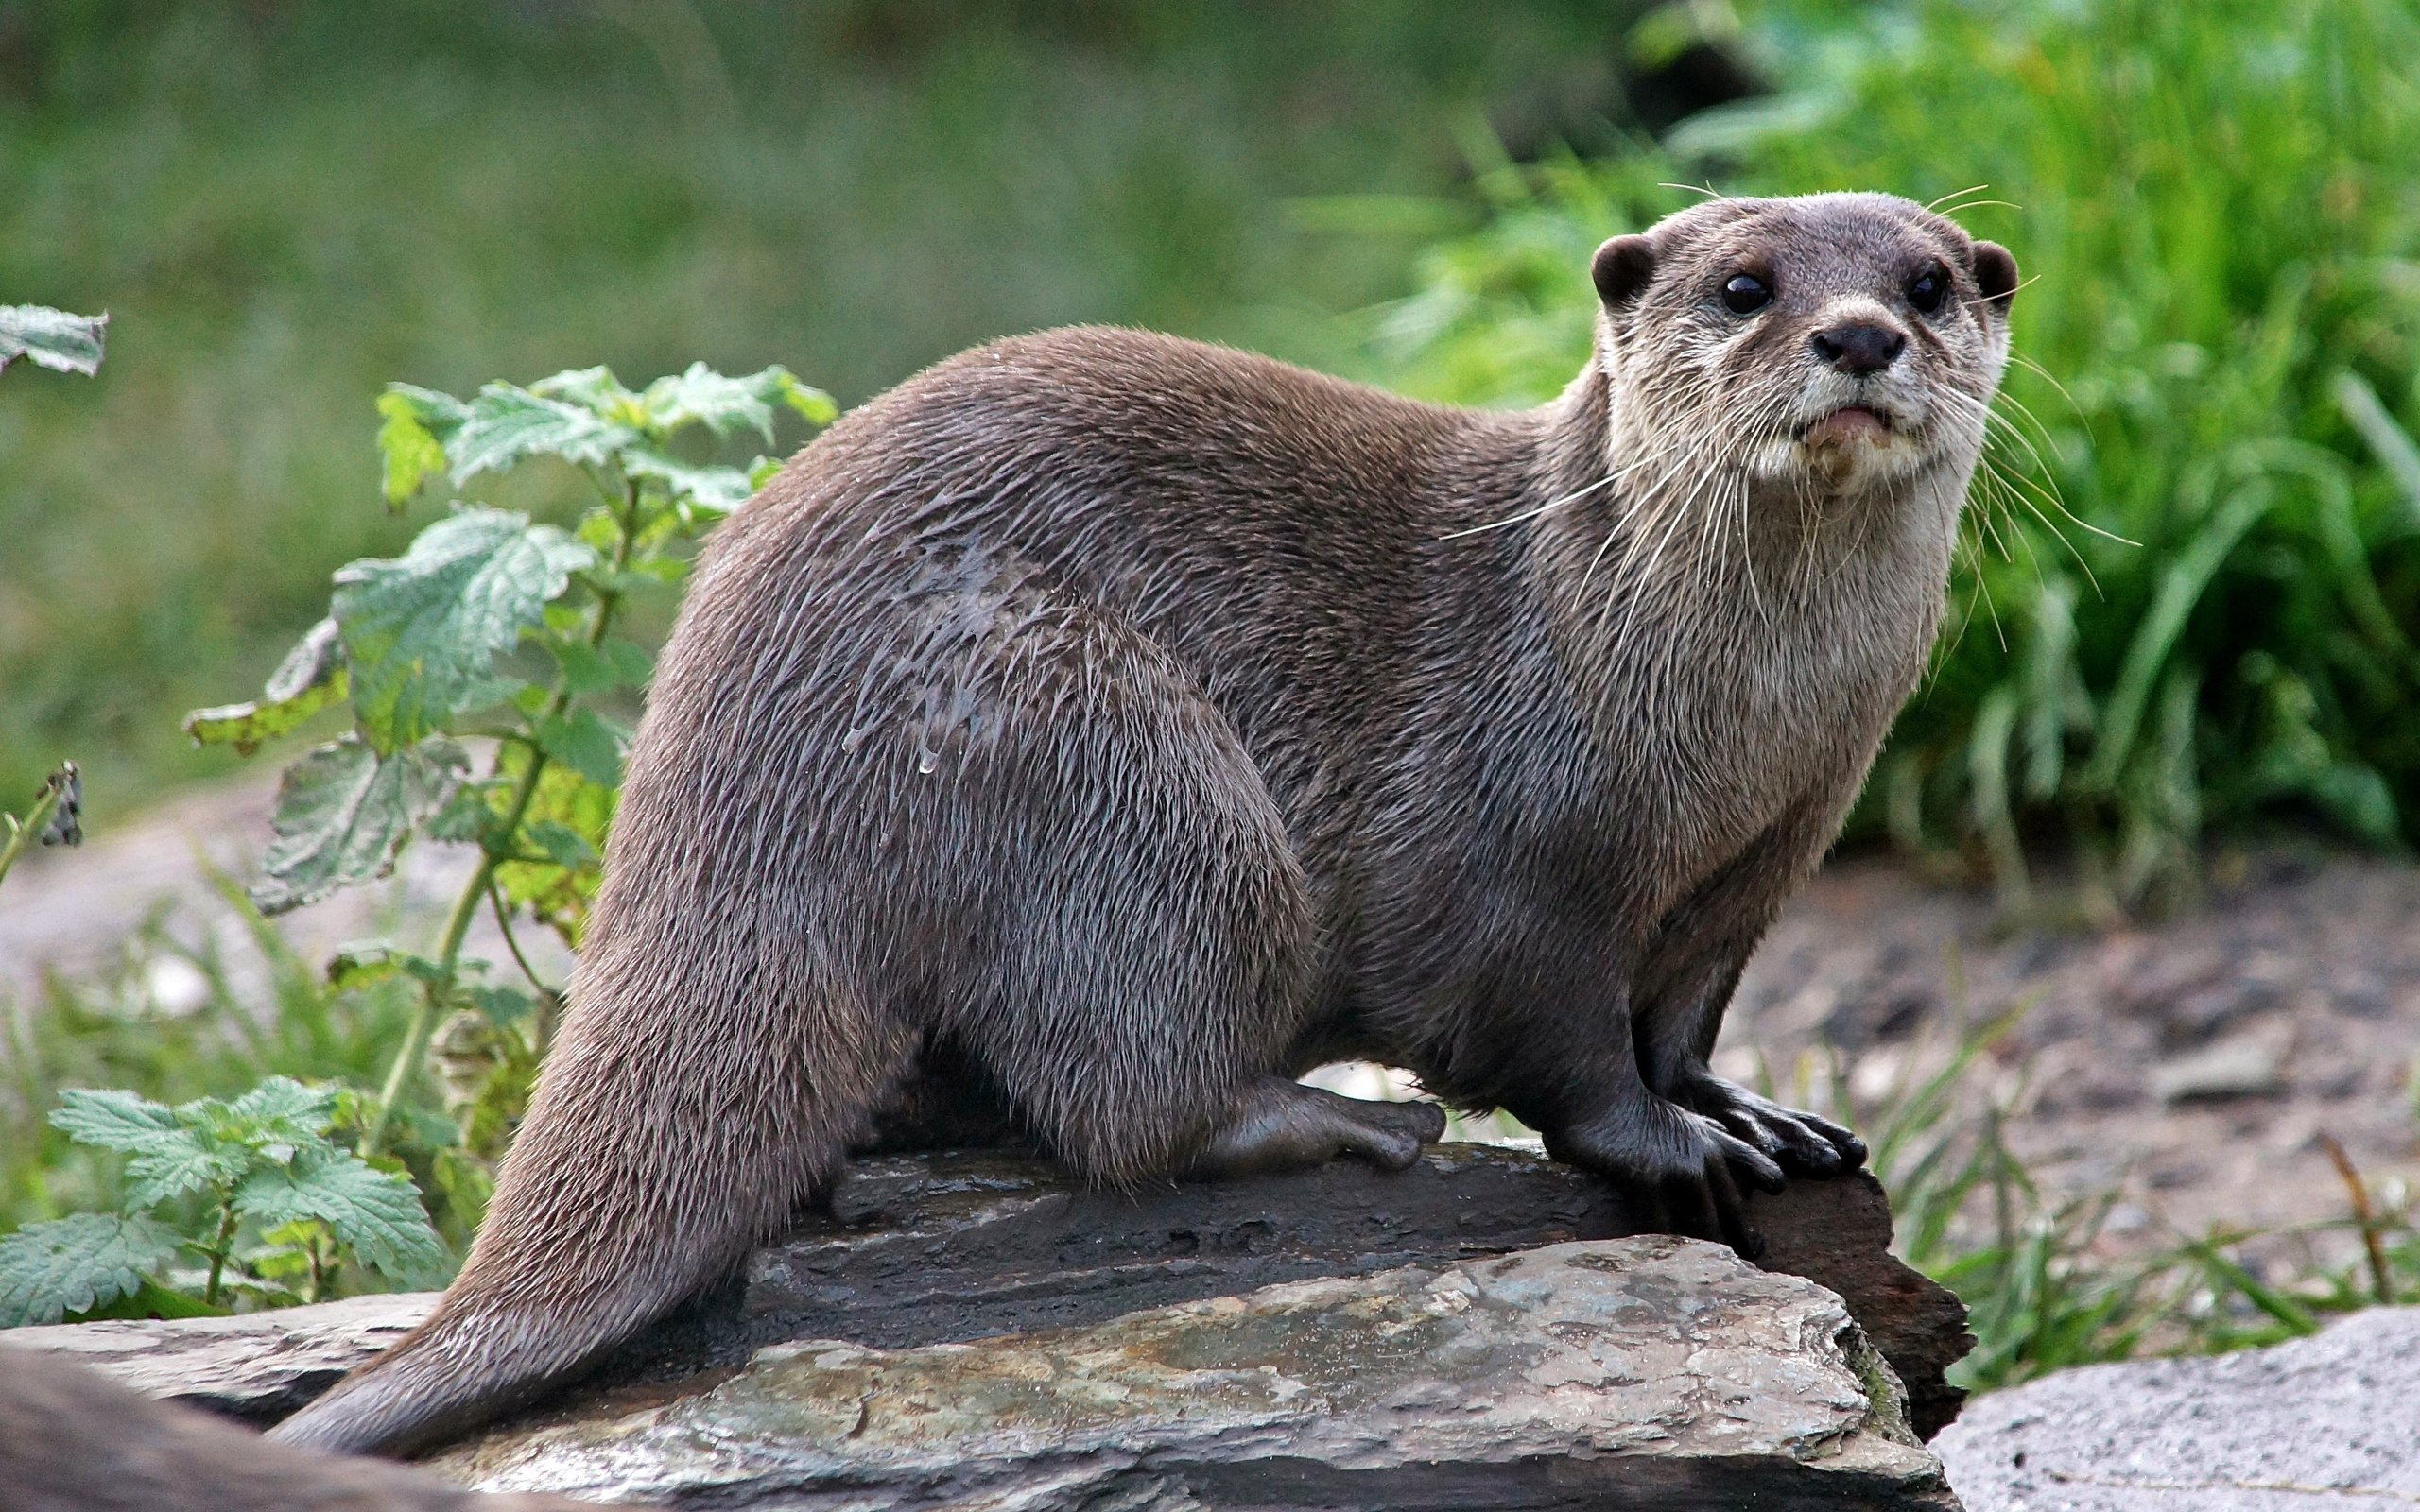 FXK62: Otter, 1615.5 Kb, by Trevor Wrobel #2171370